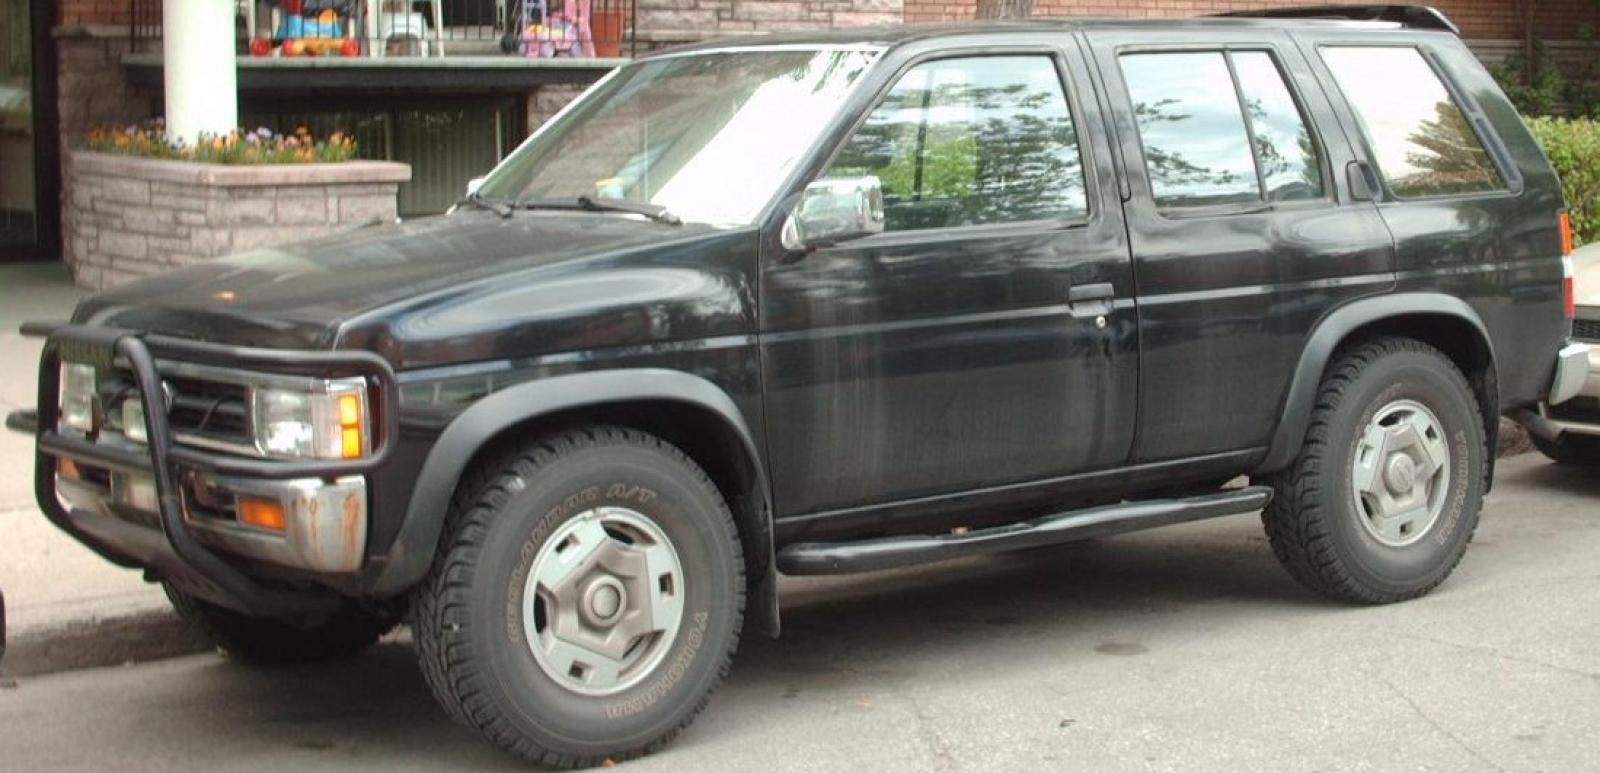 1995 Nissan Pathfinder Information And Photos Zombiedrive